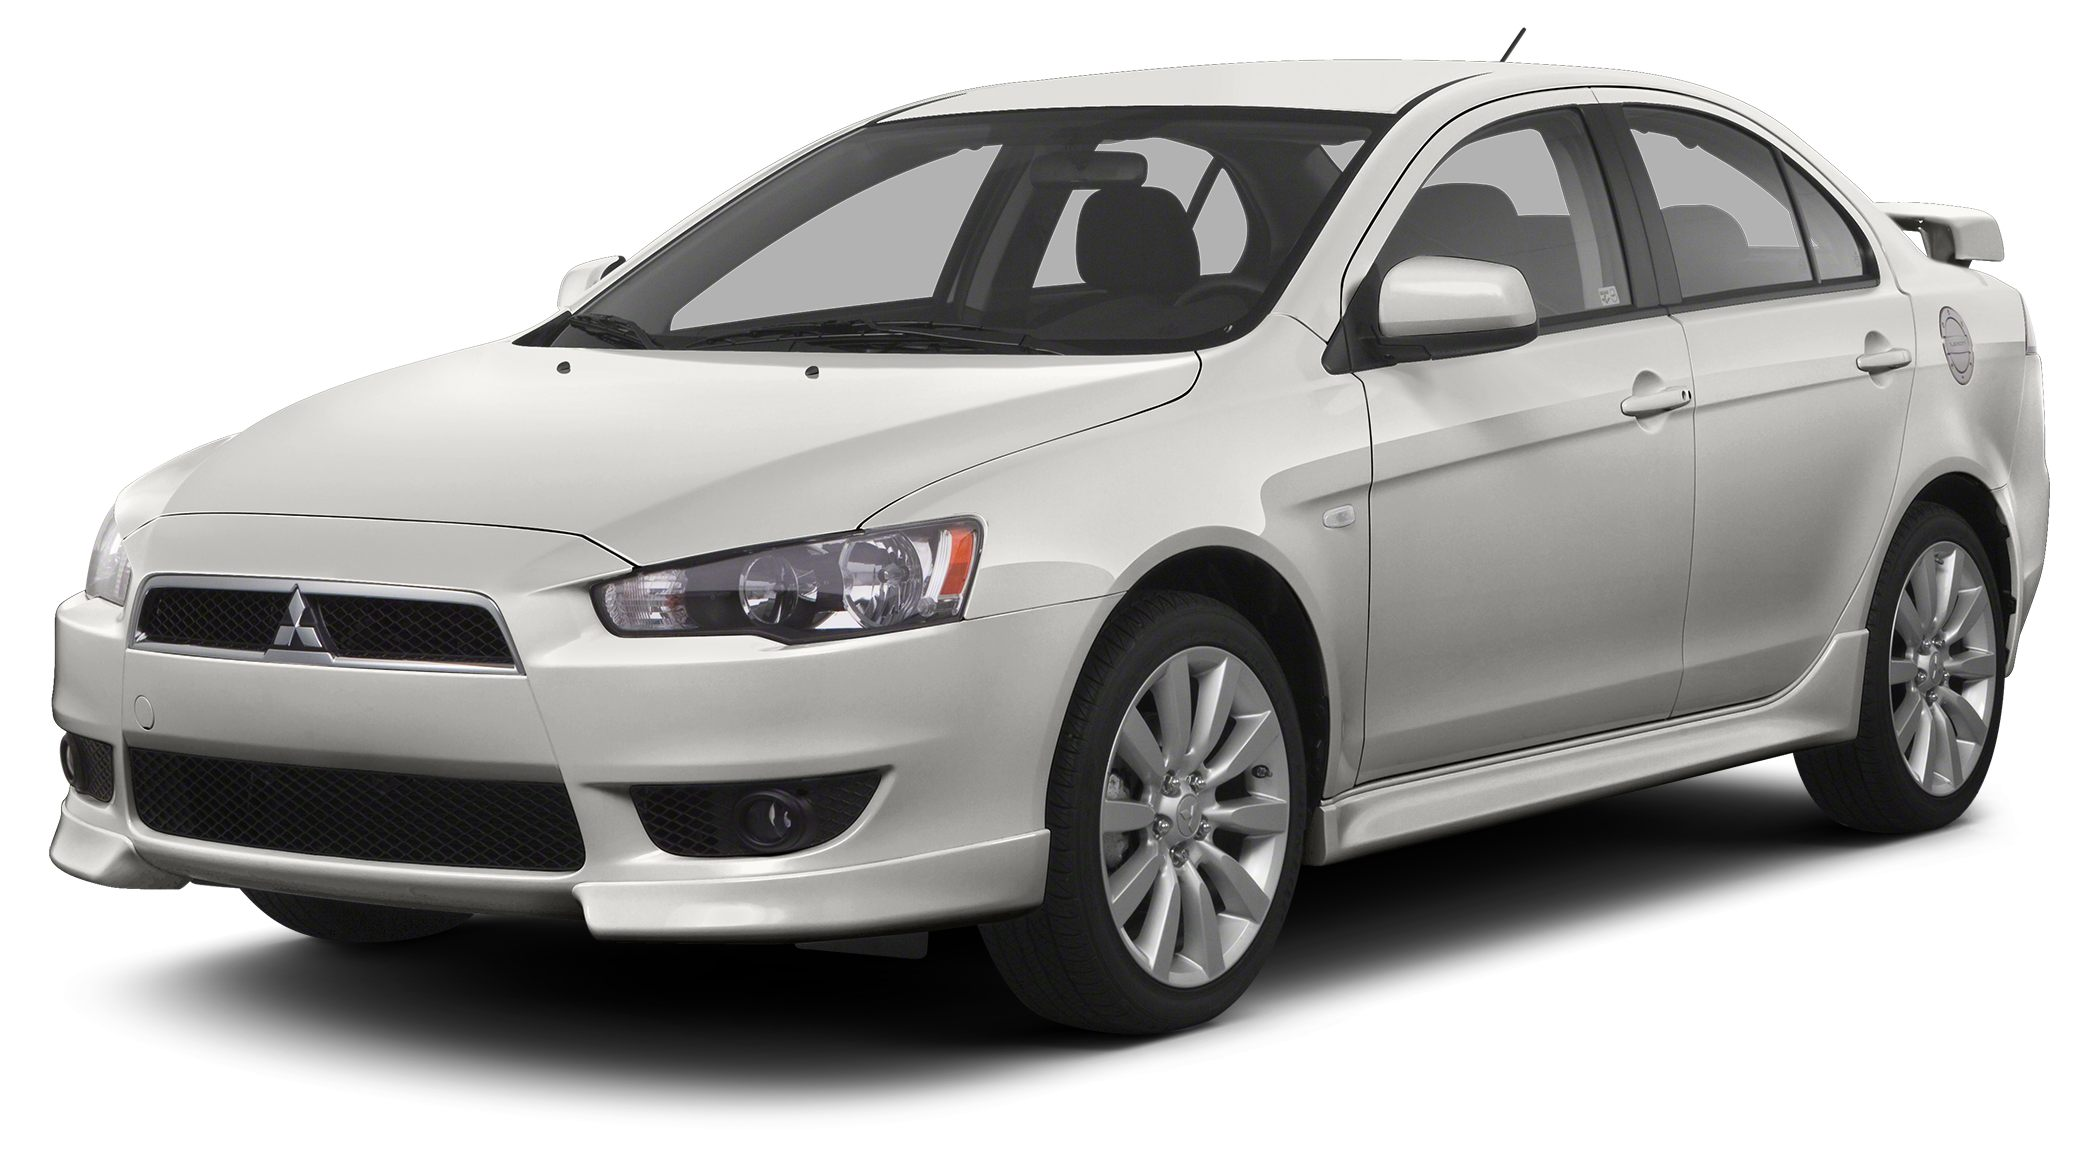 2013 Mitsubishi Lancer ES Never worry on the road again with anti-lock brakes traction control s